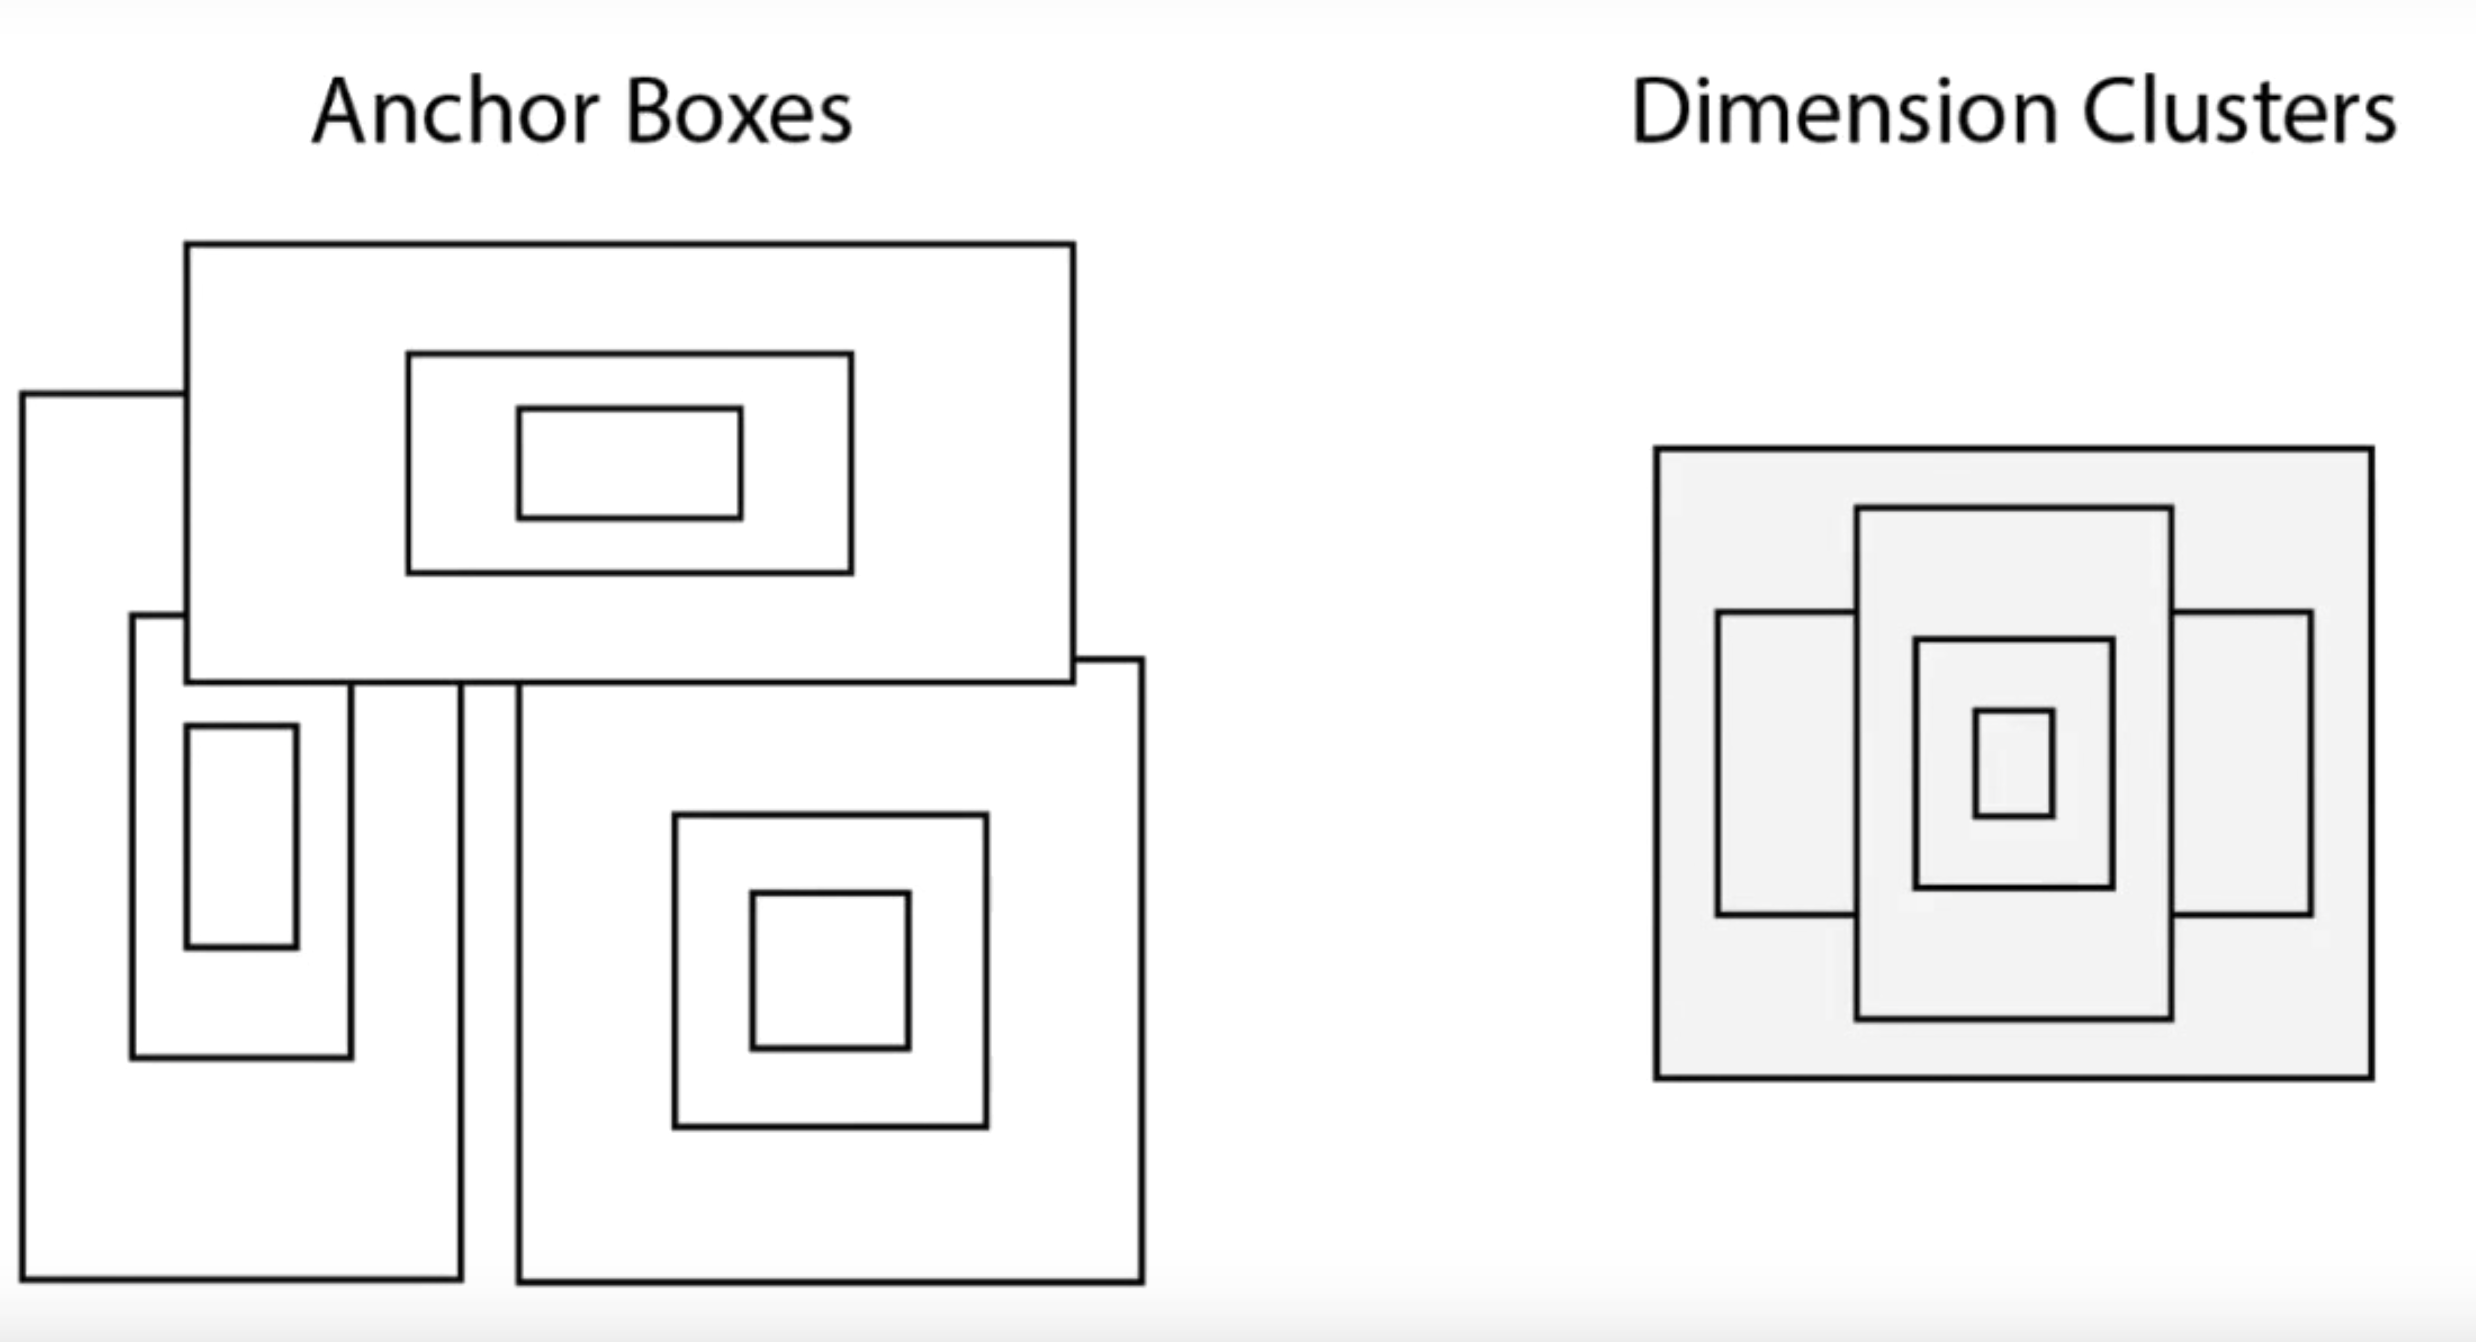 Anchor boxes converted to dimension clusters